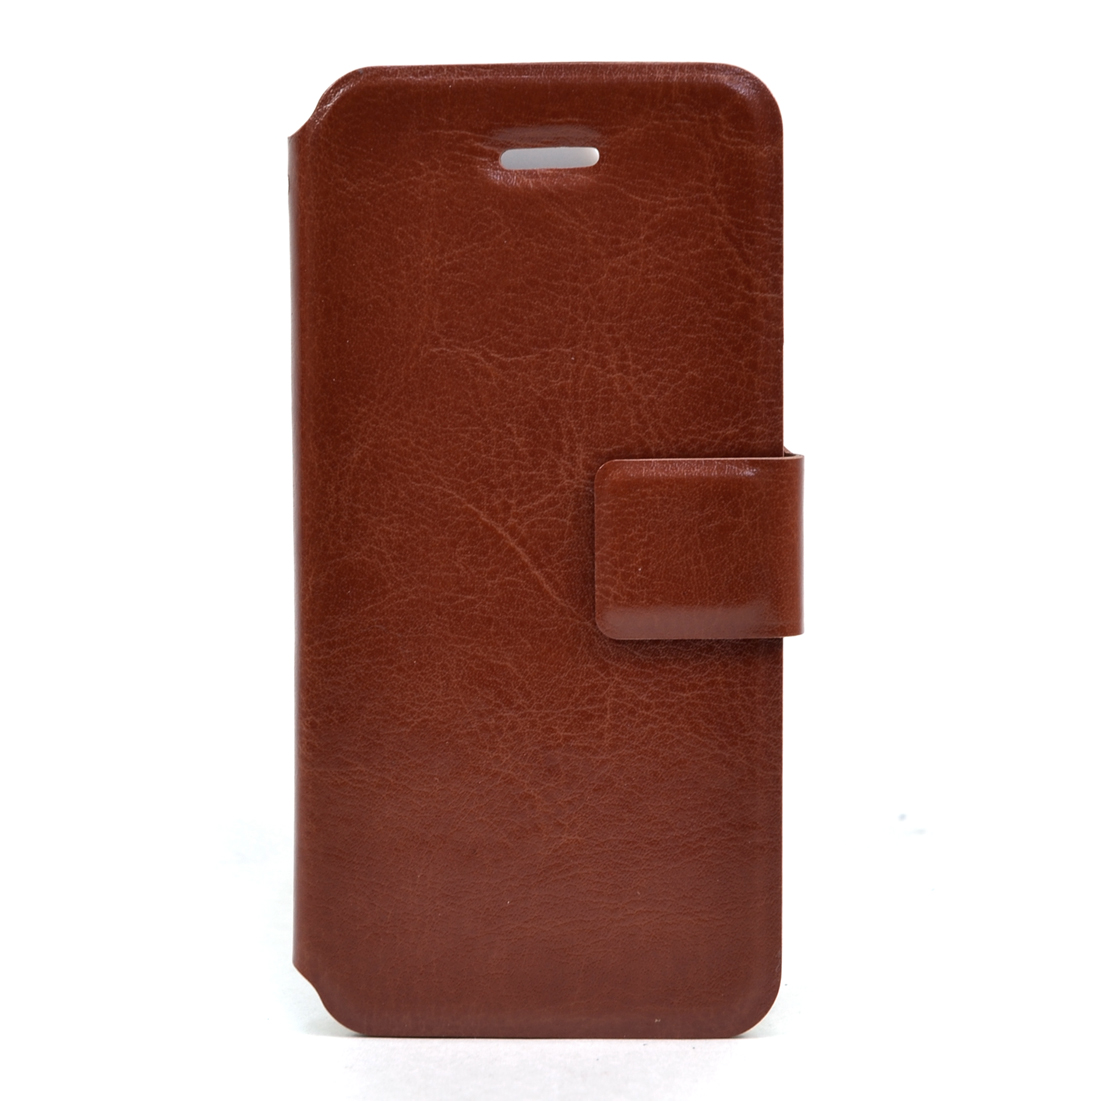 Dasein® Classic Faux Leather Cell Phone Case for iPhone 5